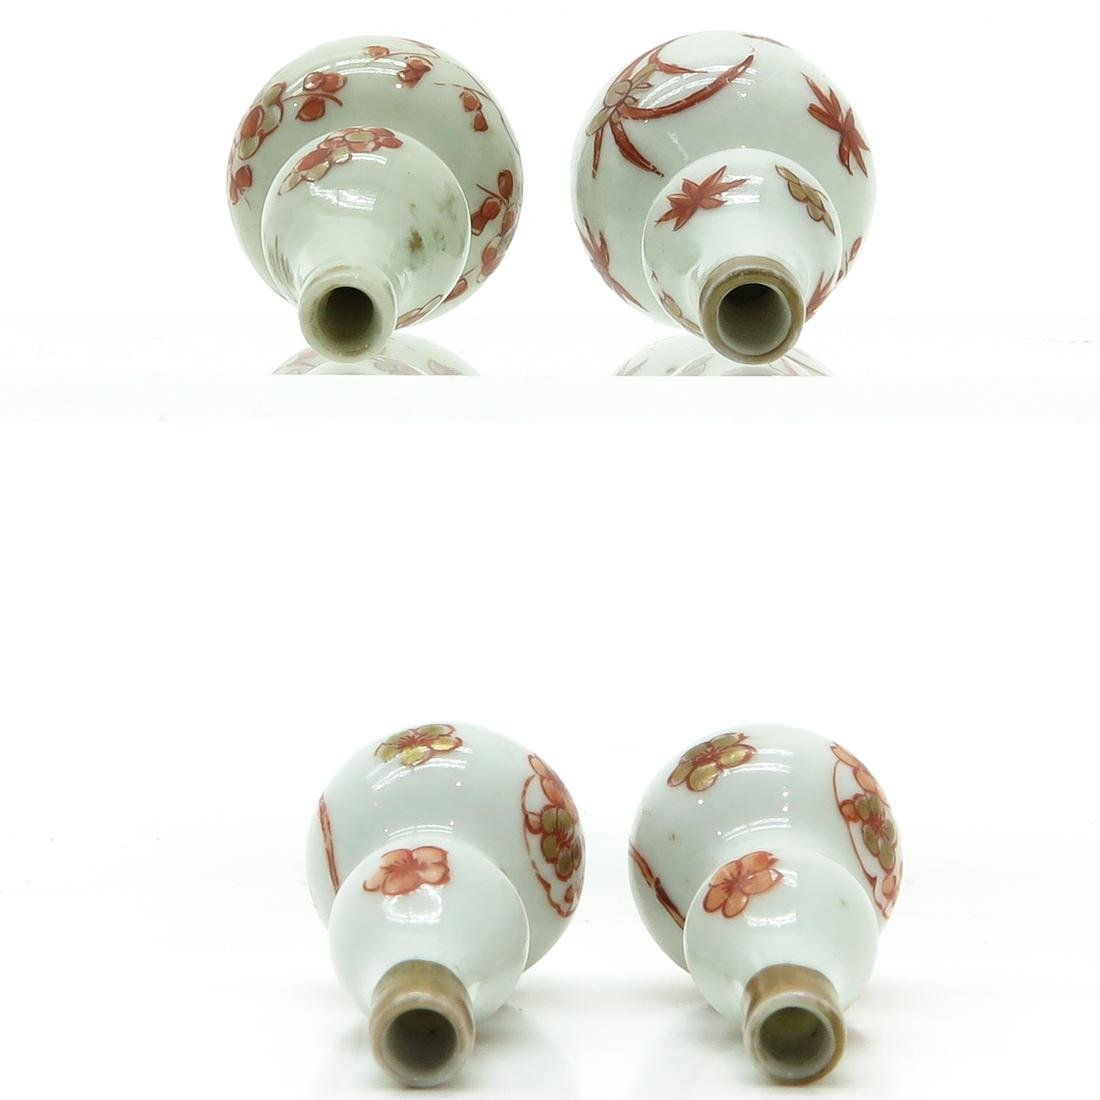 Two Pair of Miniature Doll House Vases - 5